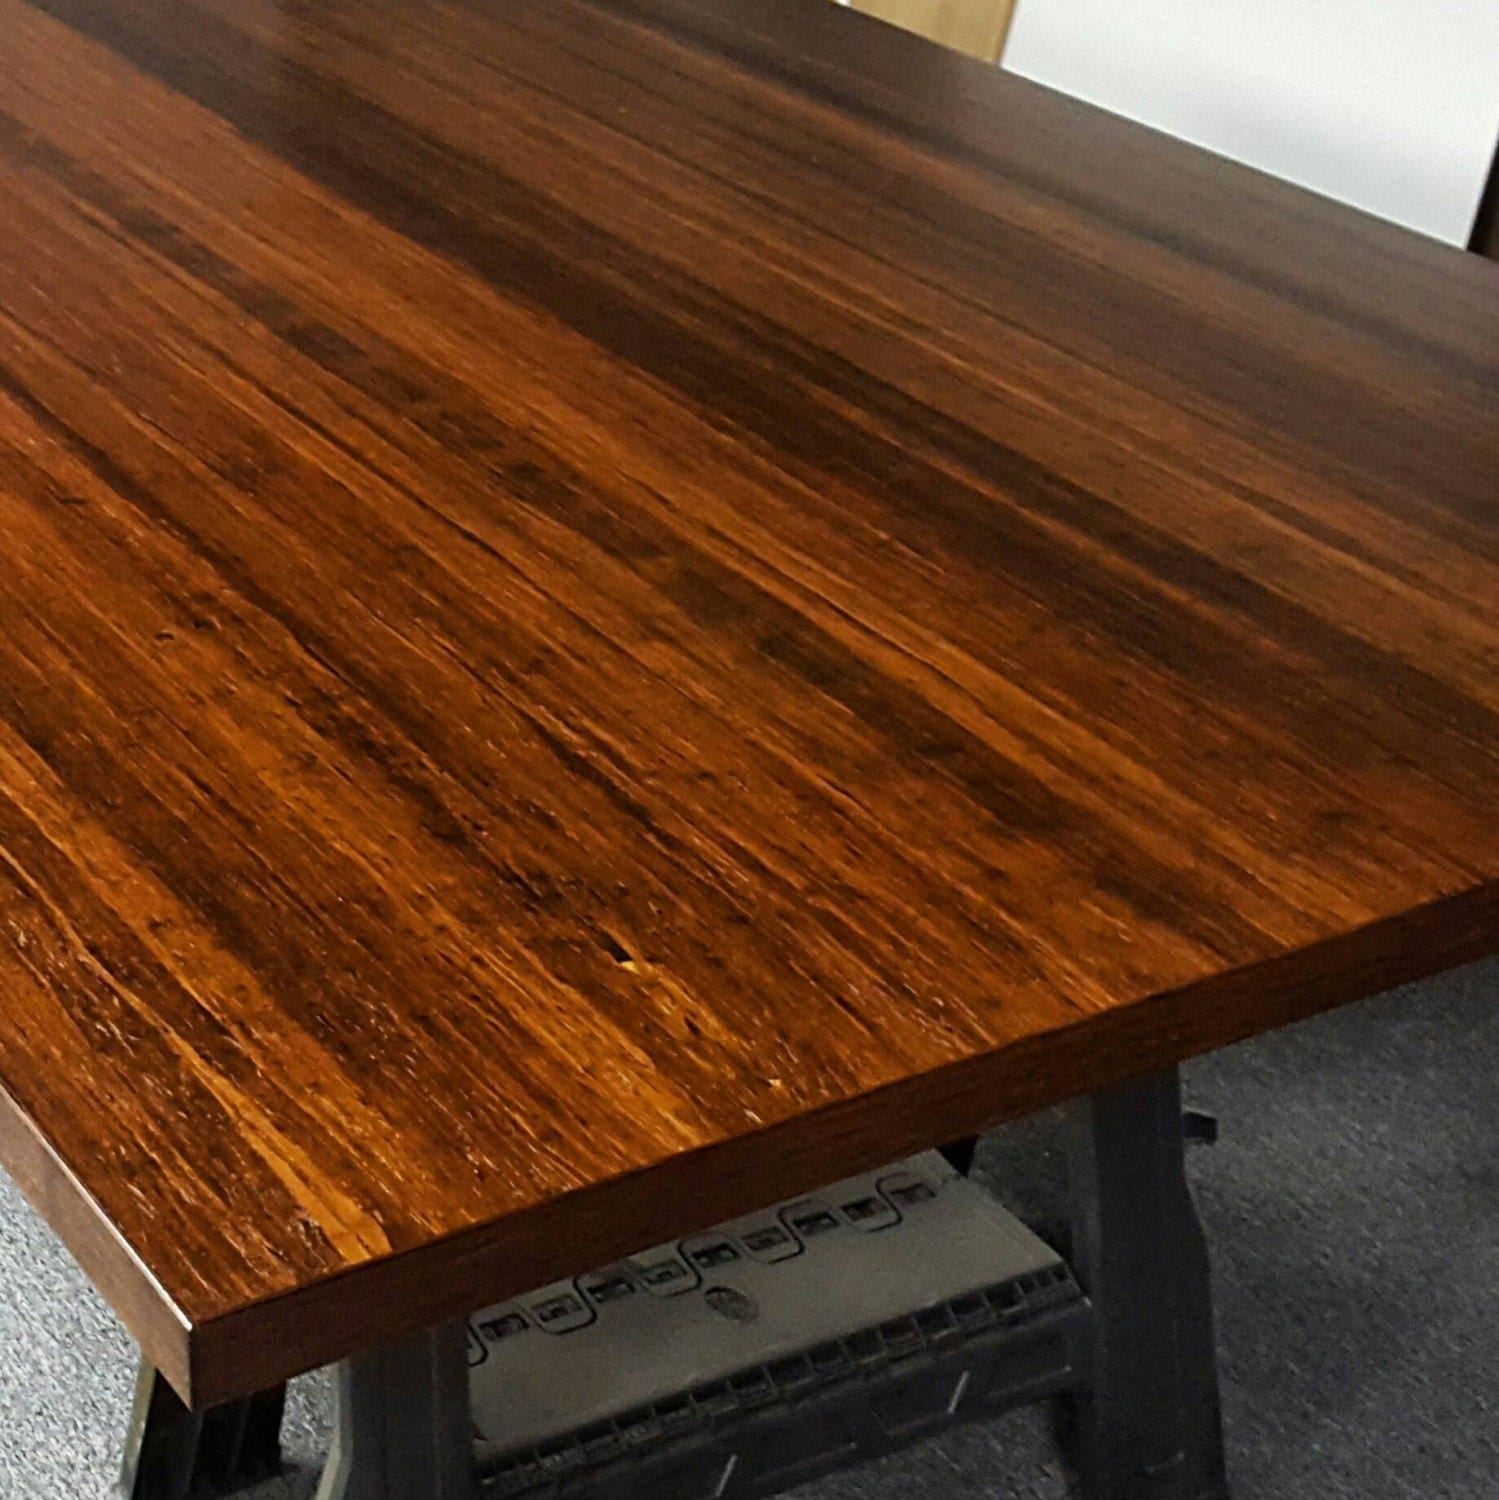 Solid Wood Table Tops With No Finish By Flintalleyfurniture